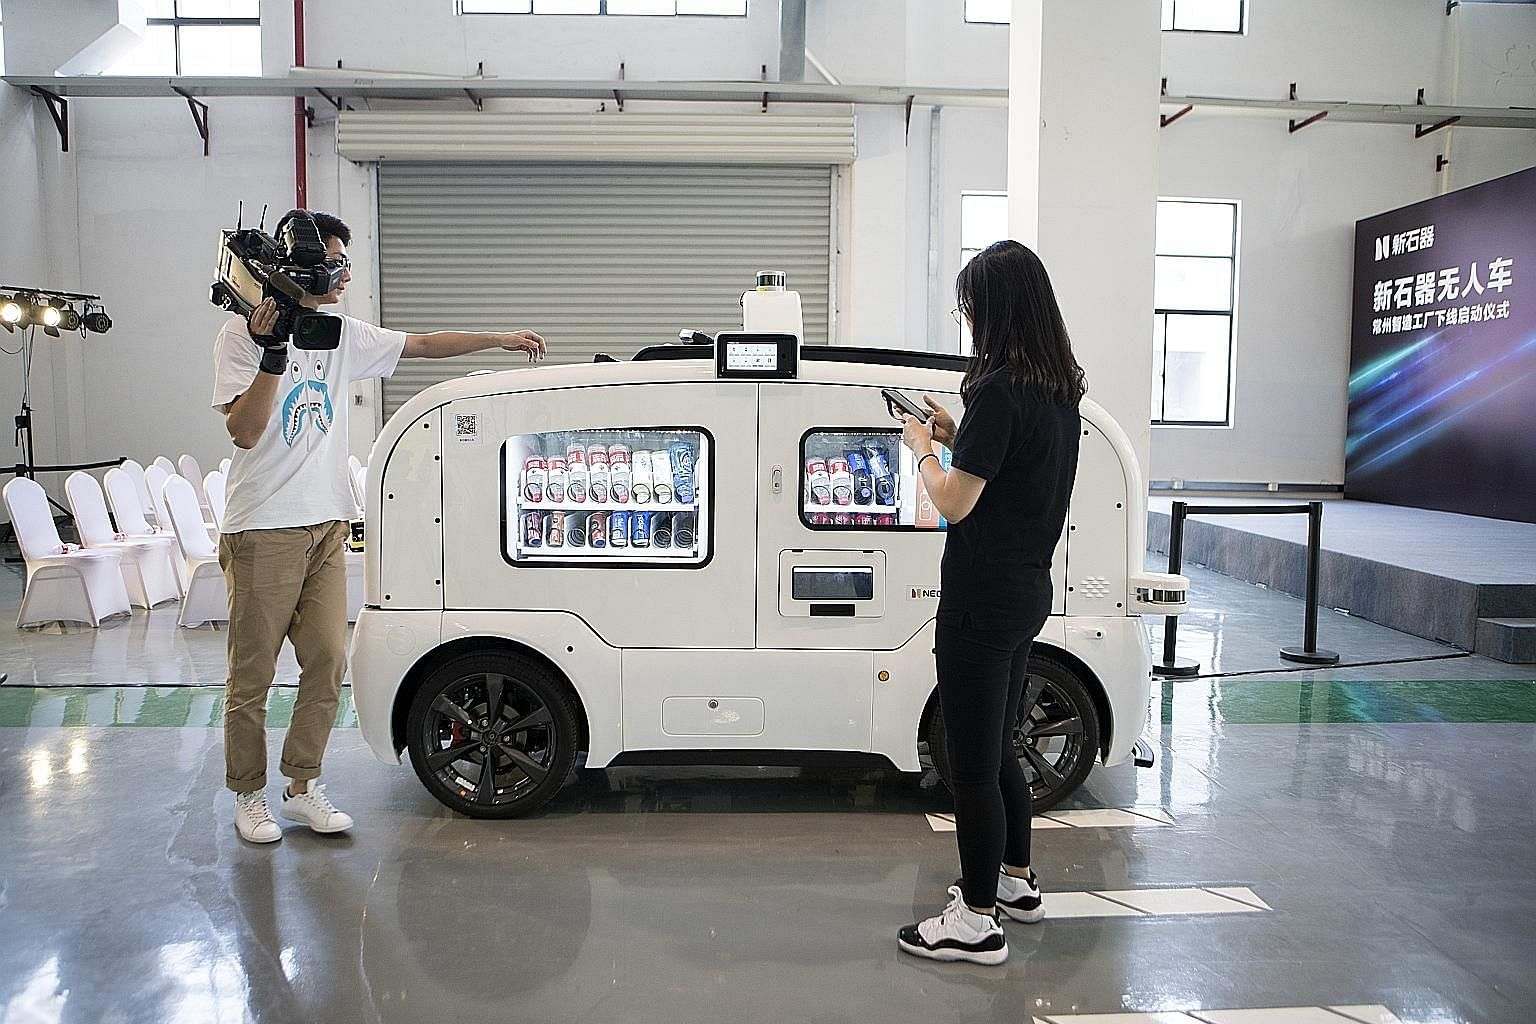 An autonomous vending-machine vehicle at a launch event at Neolix's facility in Changzhou city in China last Friday. The Chinese start-up kicked off mass production of its self-driving delivery vehicles - saying it is the first company globally to do